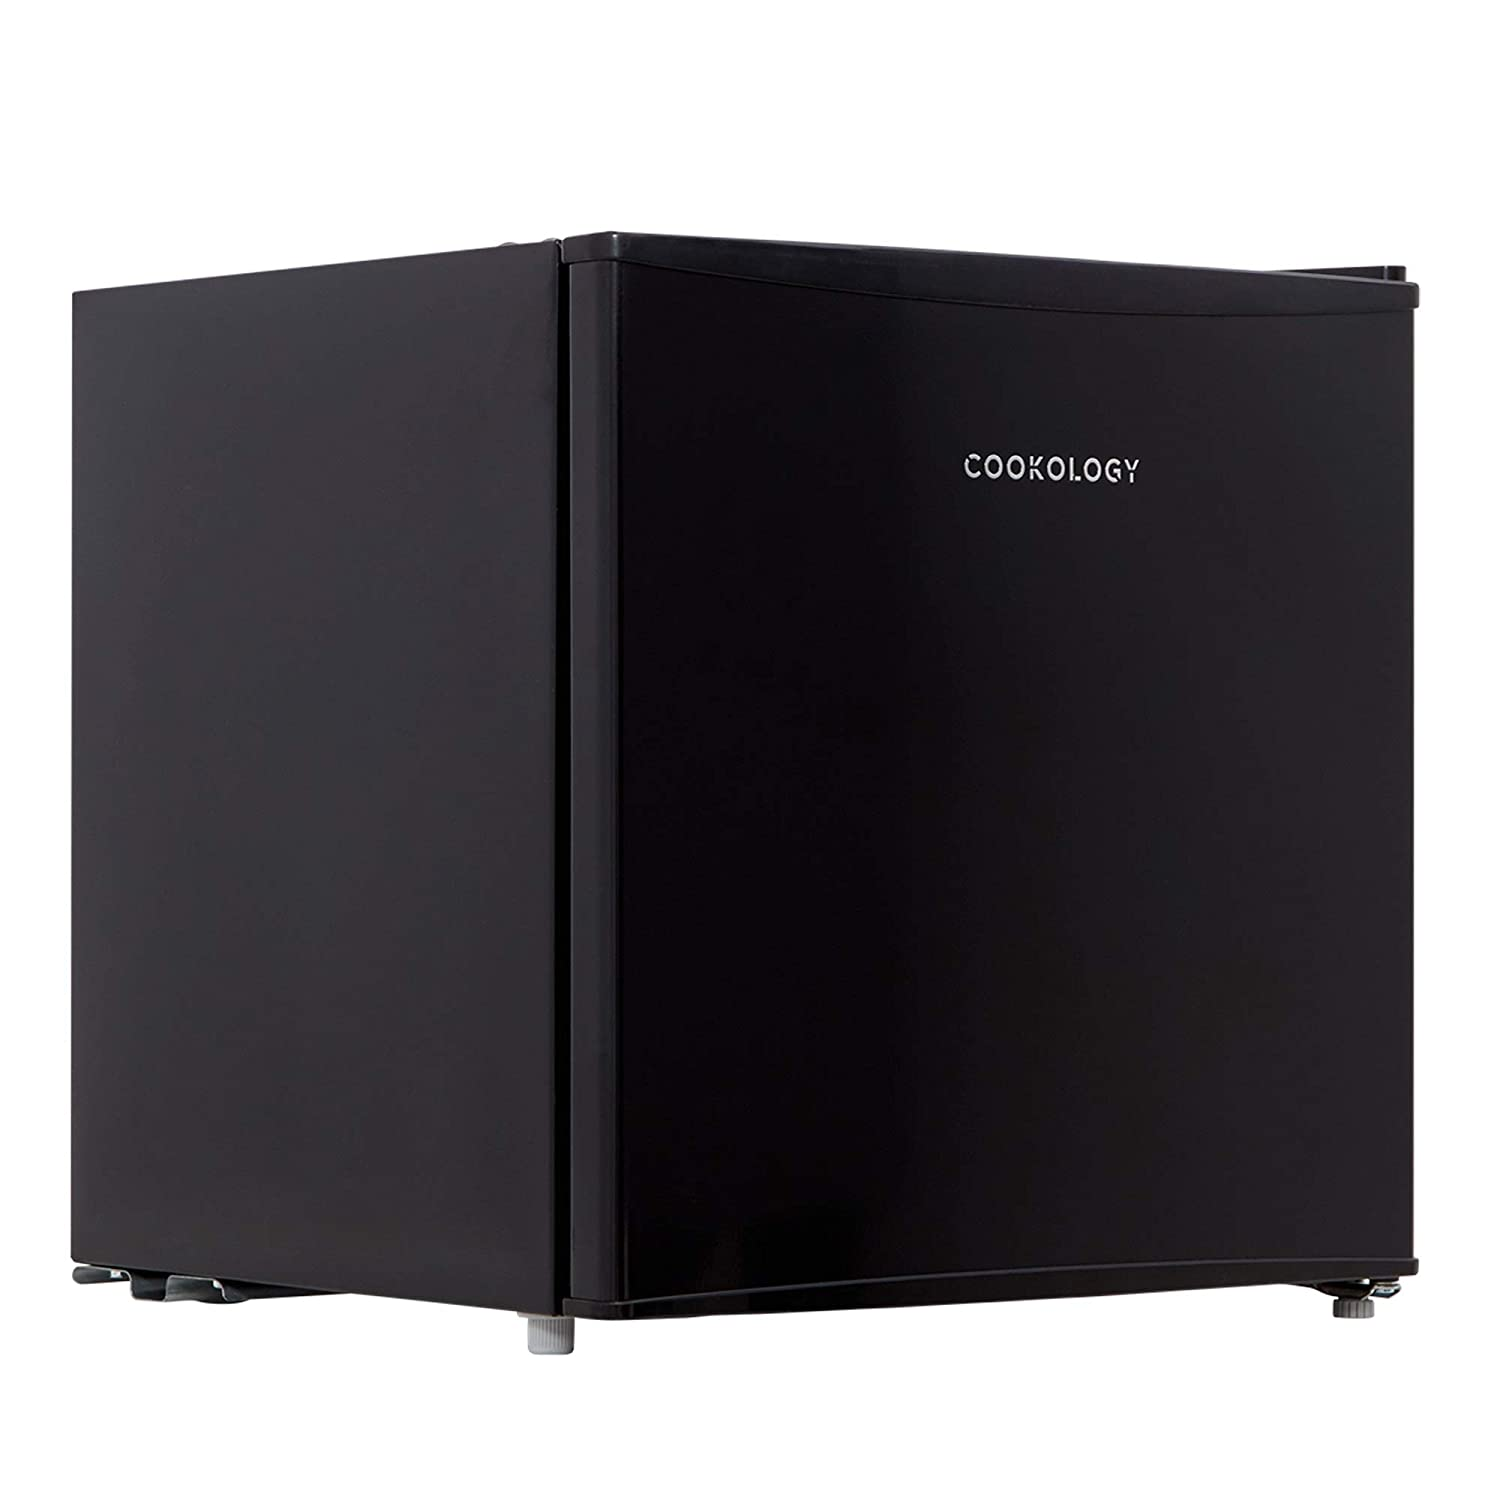 Cookology MFZ32BK Black Table Top Mini Freezer | A+ Rated, 32 Litre, 4 Star Freezer [Energy Class A+]